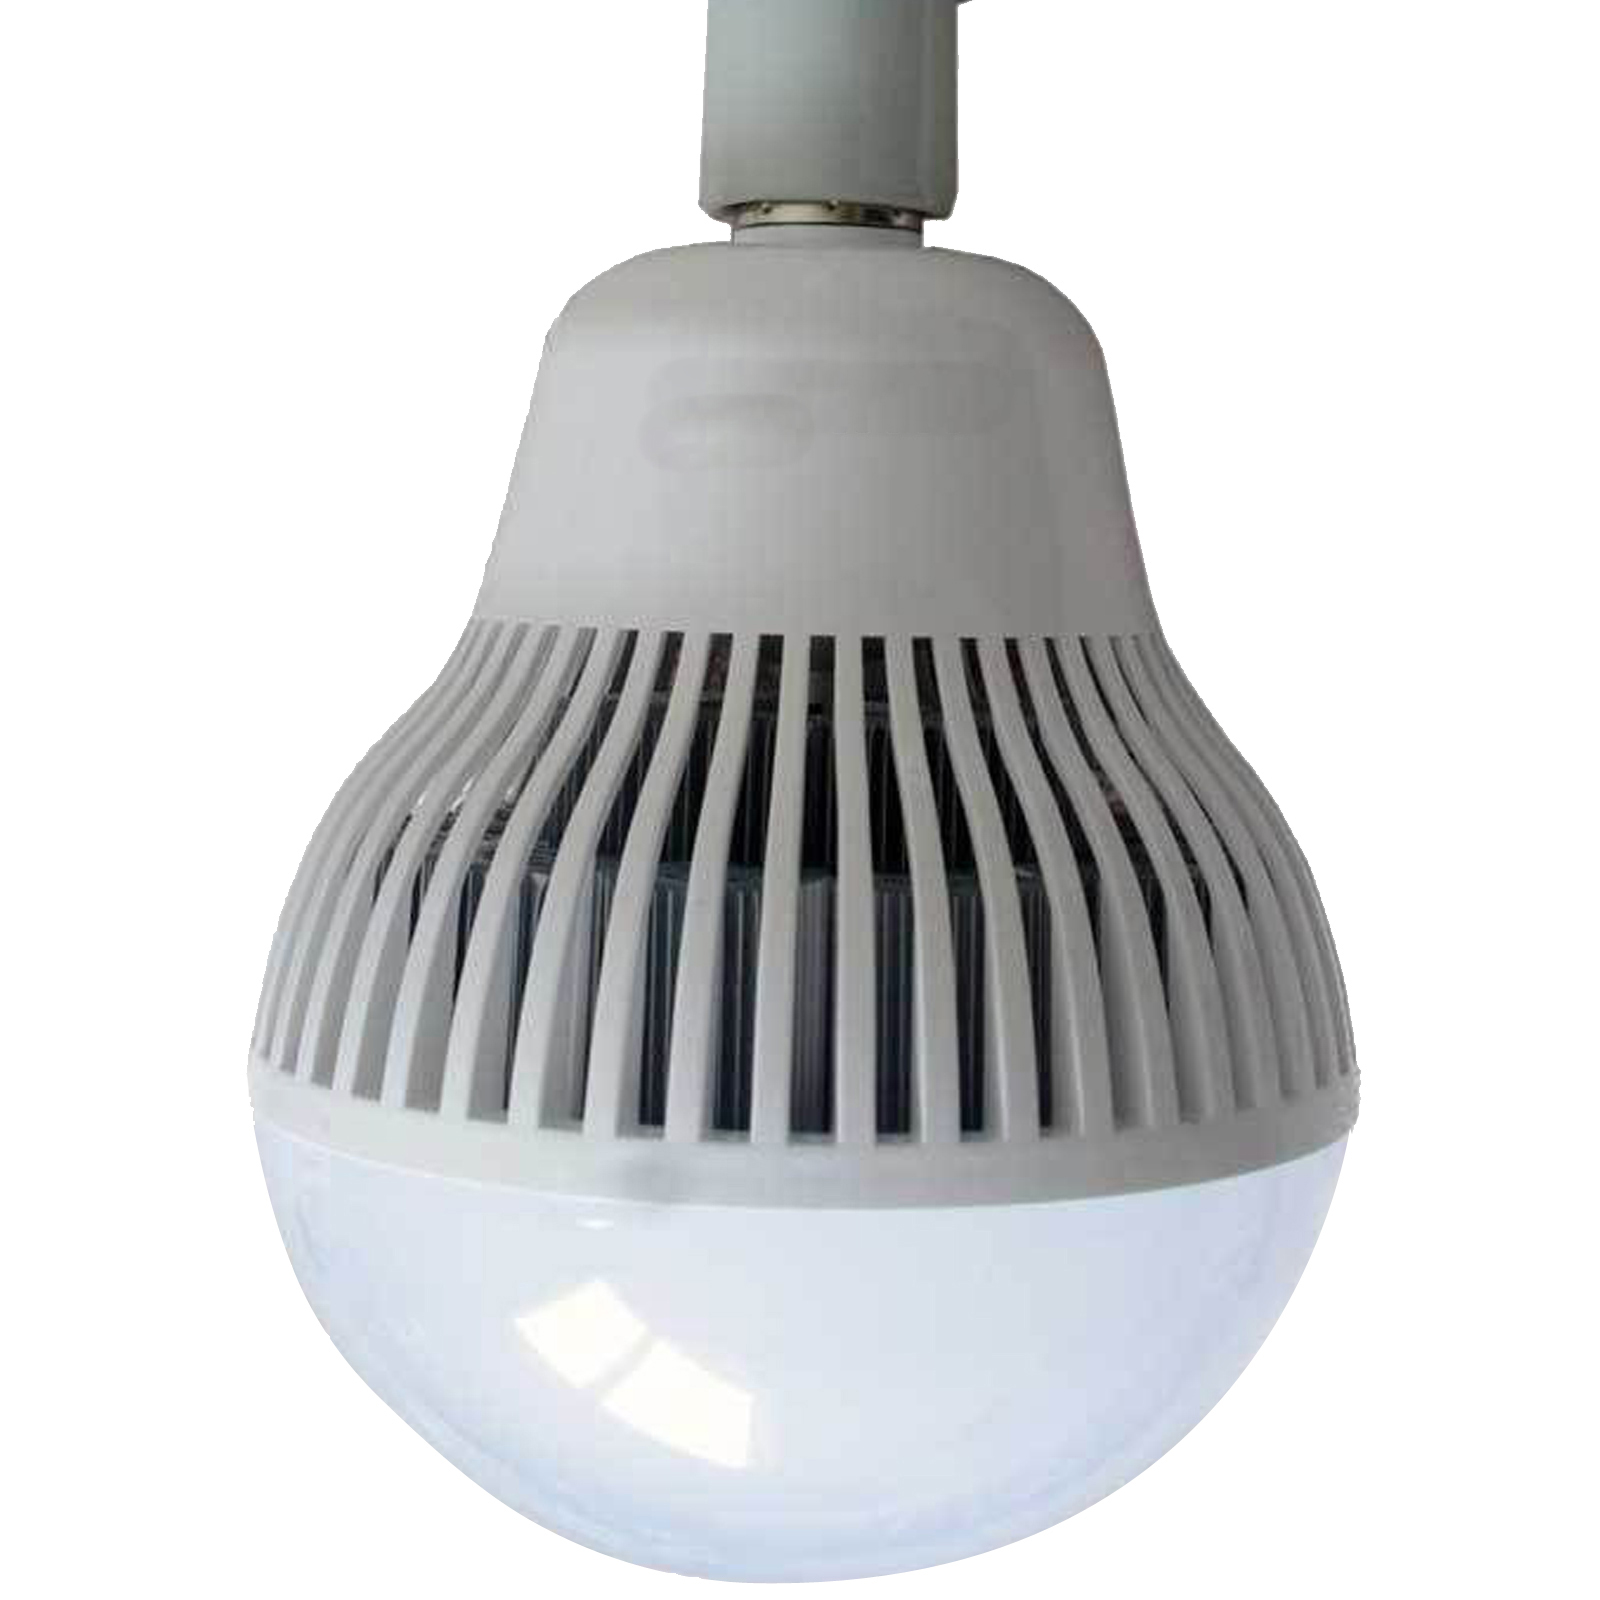 Ampoule Led 100w Latest Lampe Led Discount W Rgb Led Lampe V